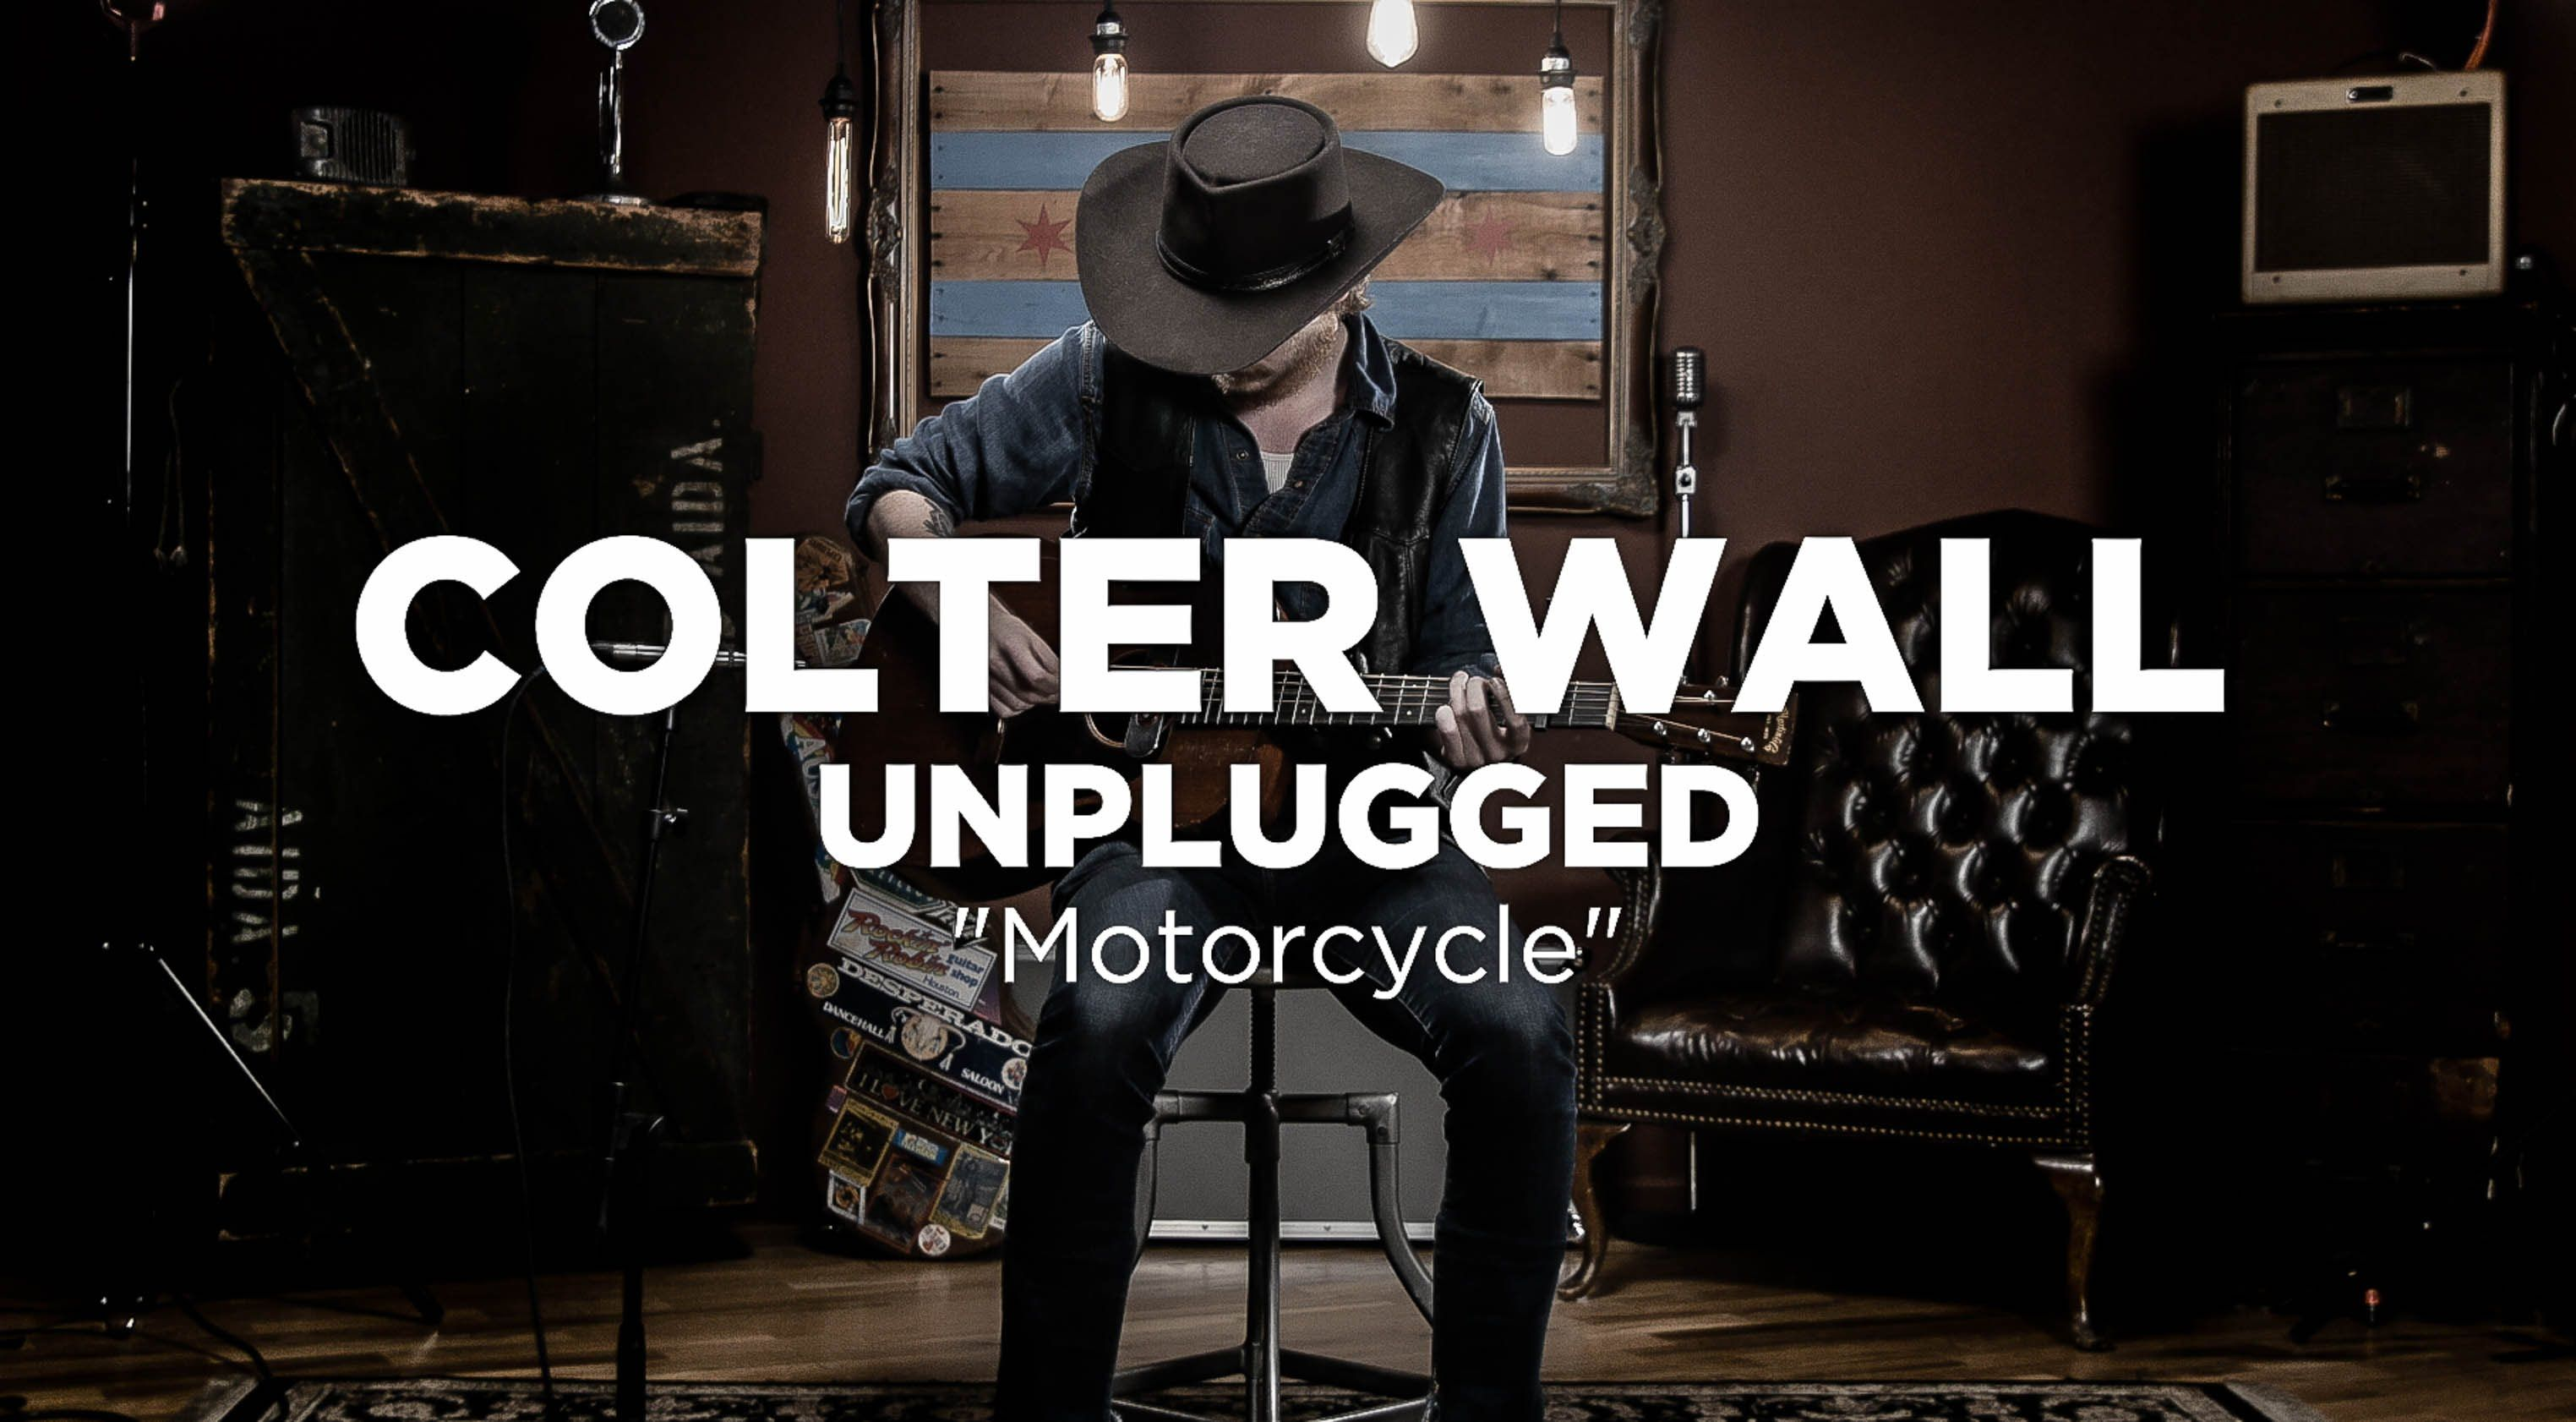 Colter Wall Motorcycle Unplugged Youtube Guitar Songs Guitar Tabs Songs Guitar Tabs Acoustic